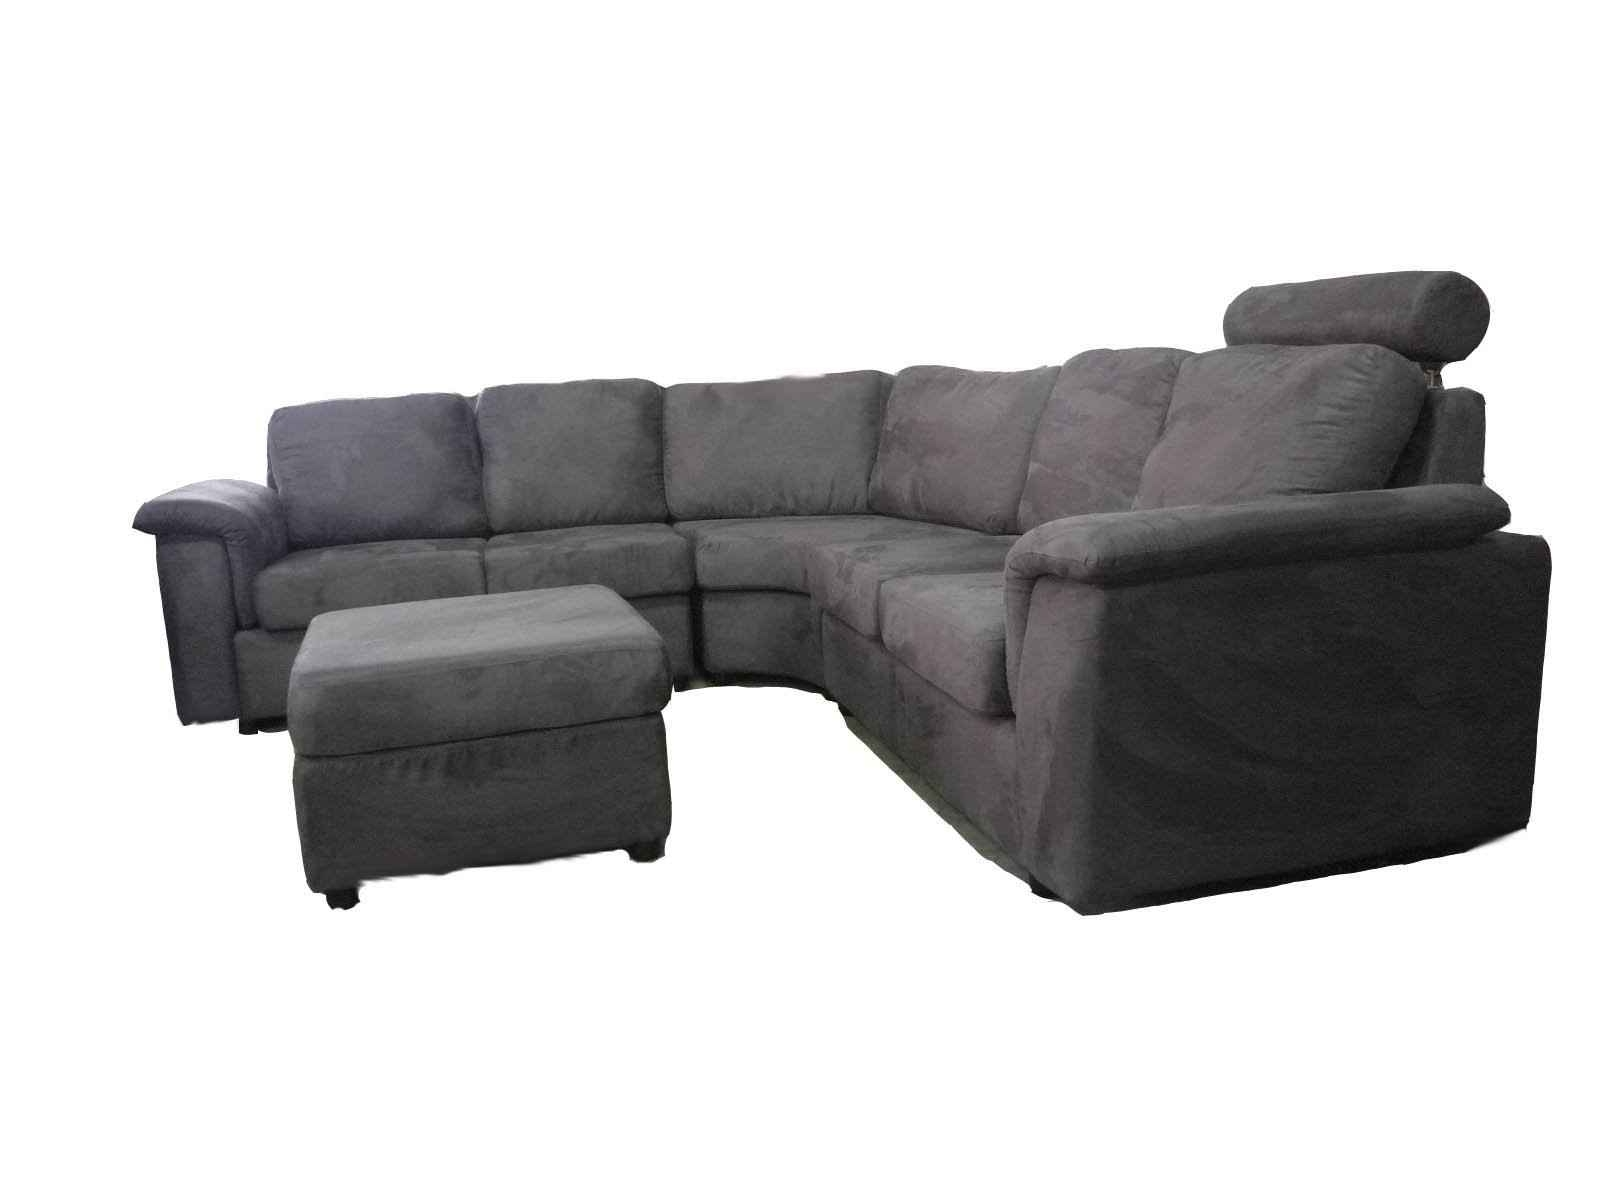 Sectional Sofas At Ikea Pertaining To 2018 Beautiful Sectional Sofas Ikea 60 For Living Room Sofa Ideas With (View 10 of 20)